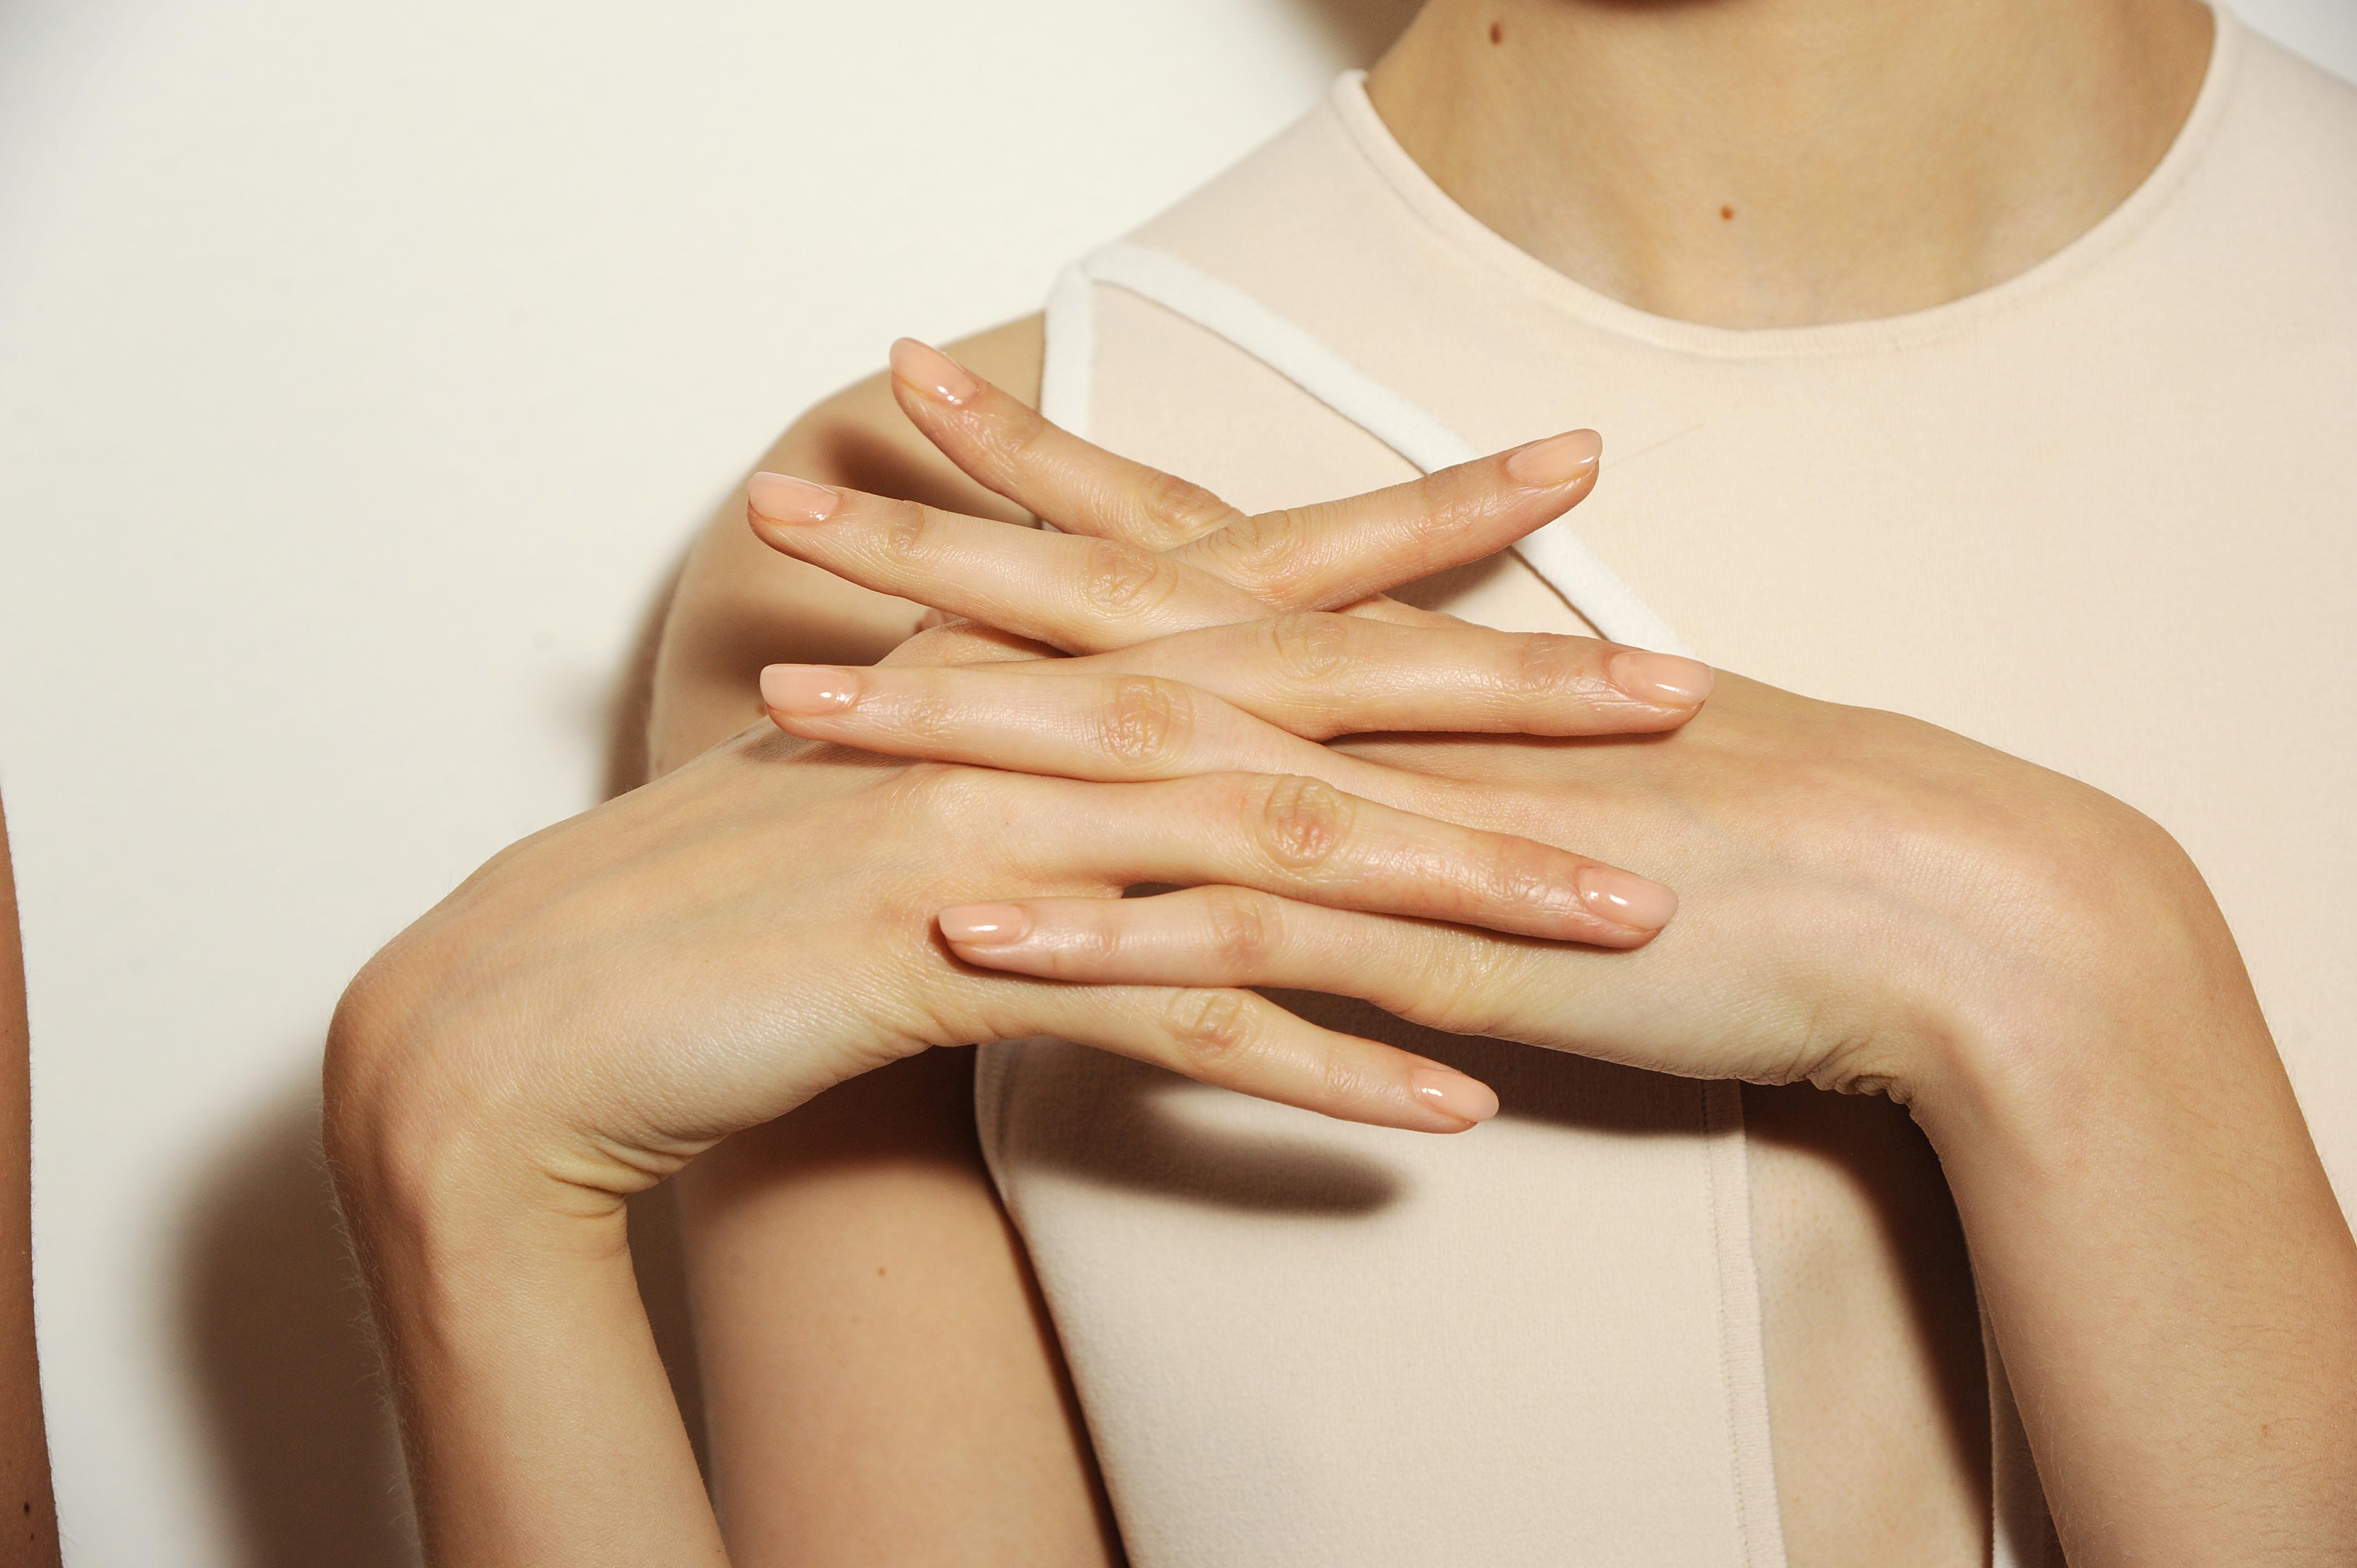 NYFW: Nails by butter LONDON on the Louise Goldin Runway